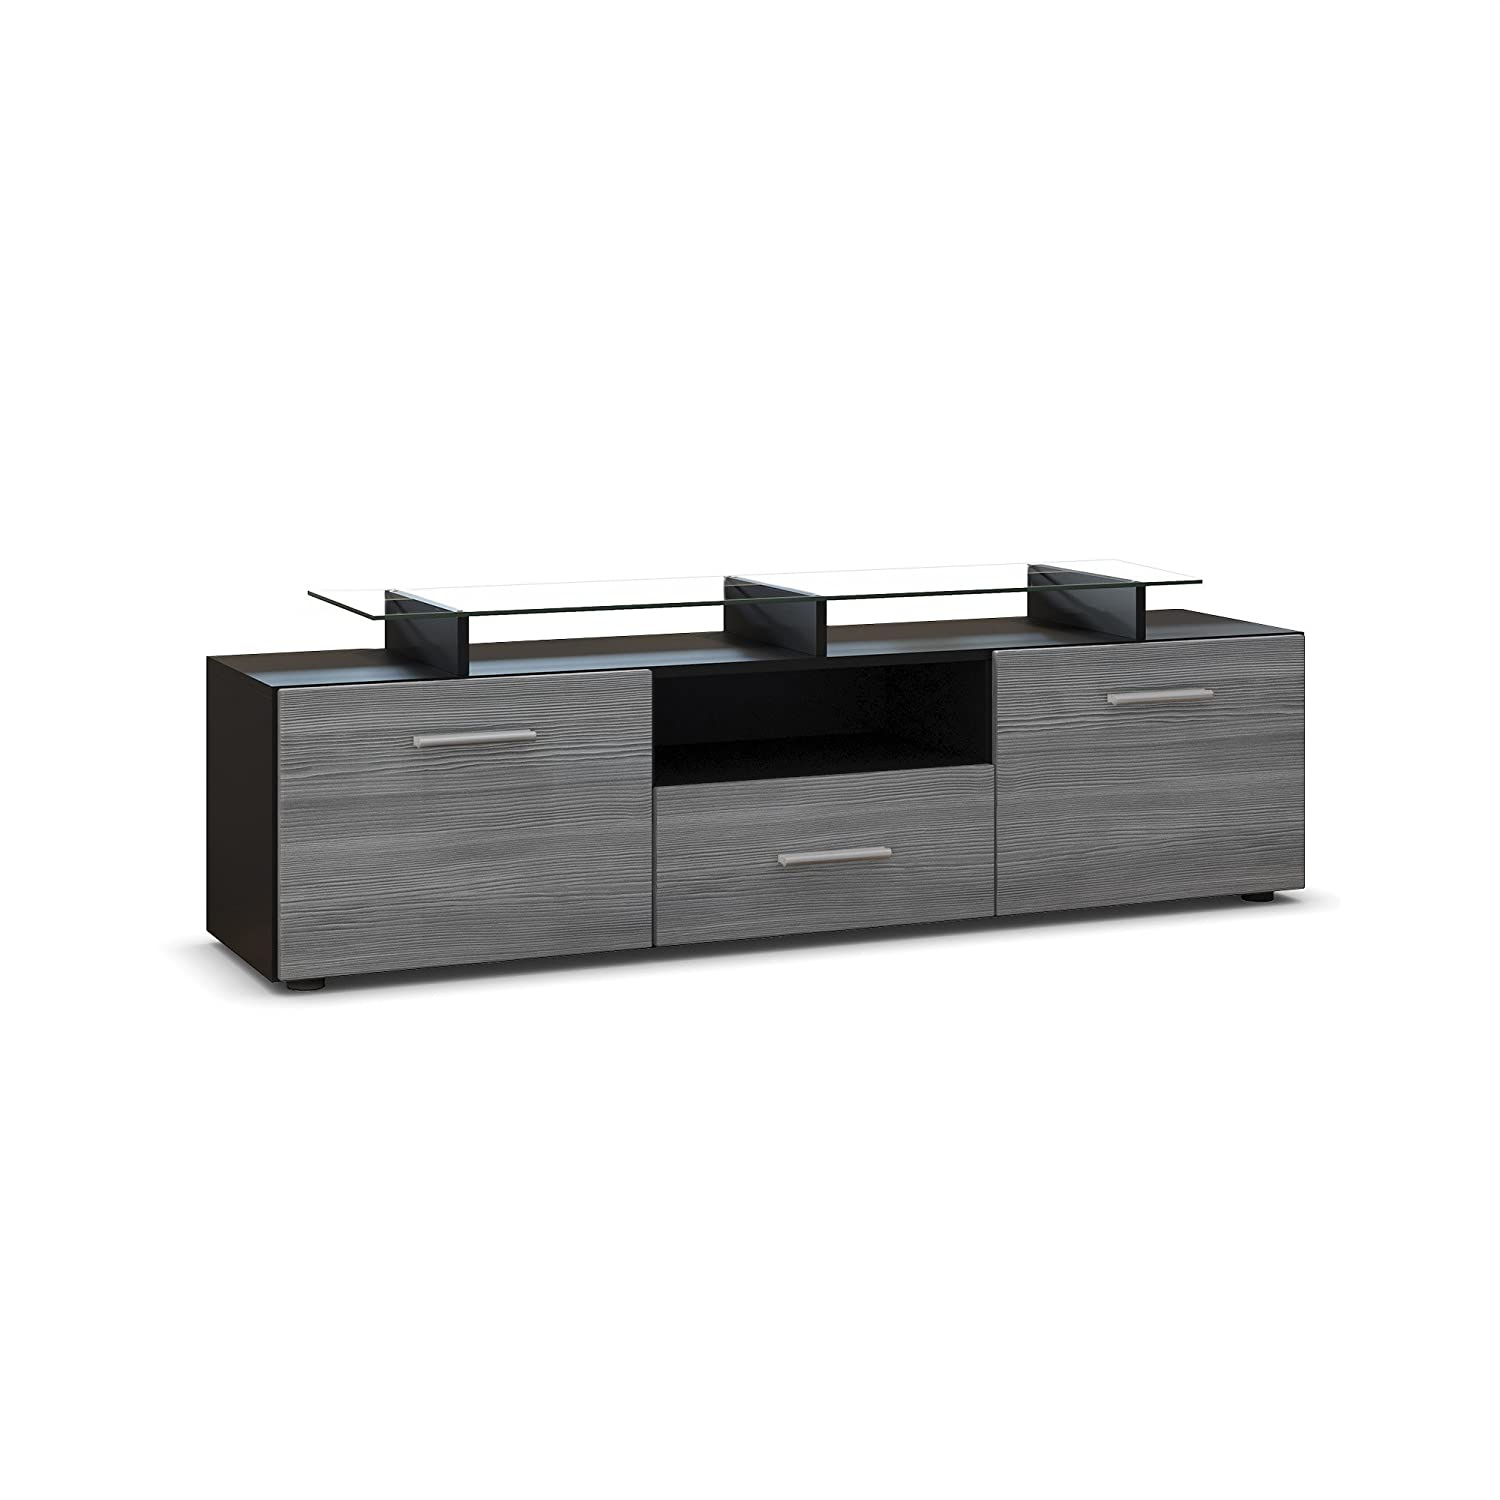 Tv Stand Unit Almada, Carcass In Black Matt Front In